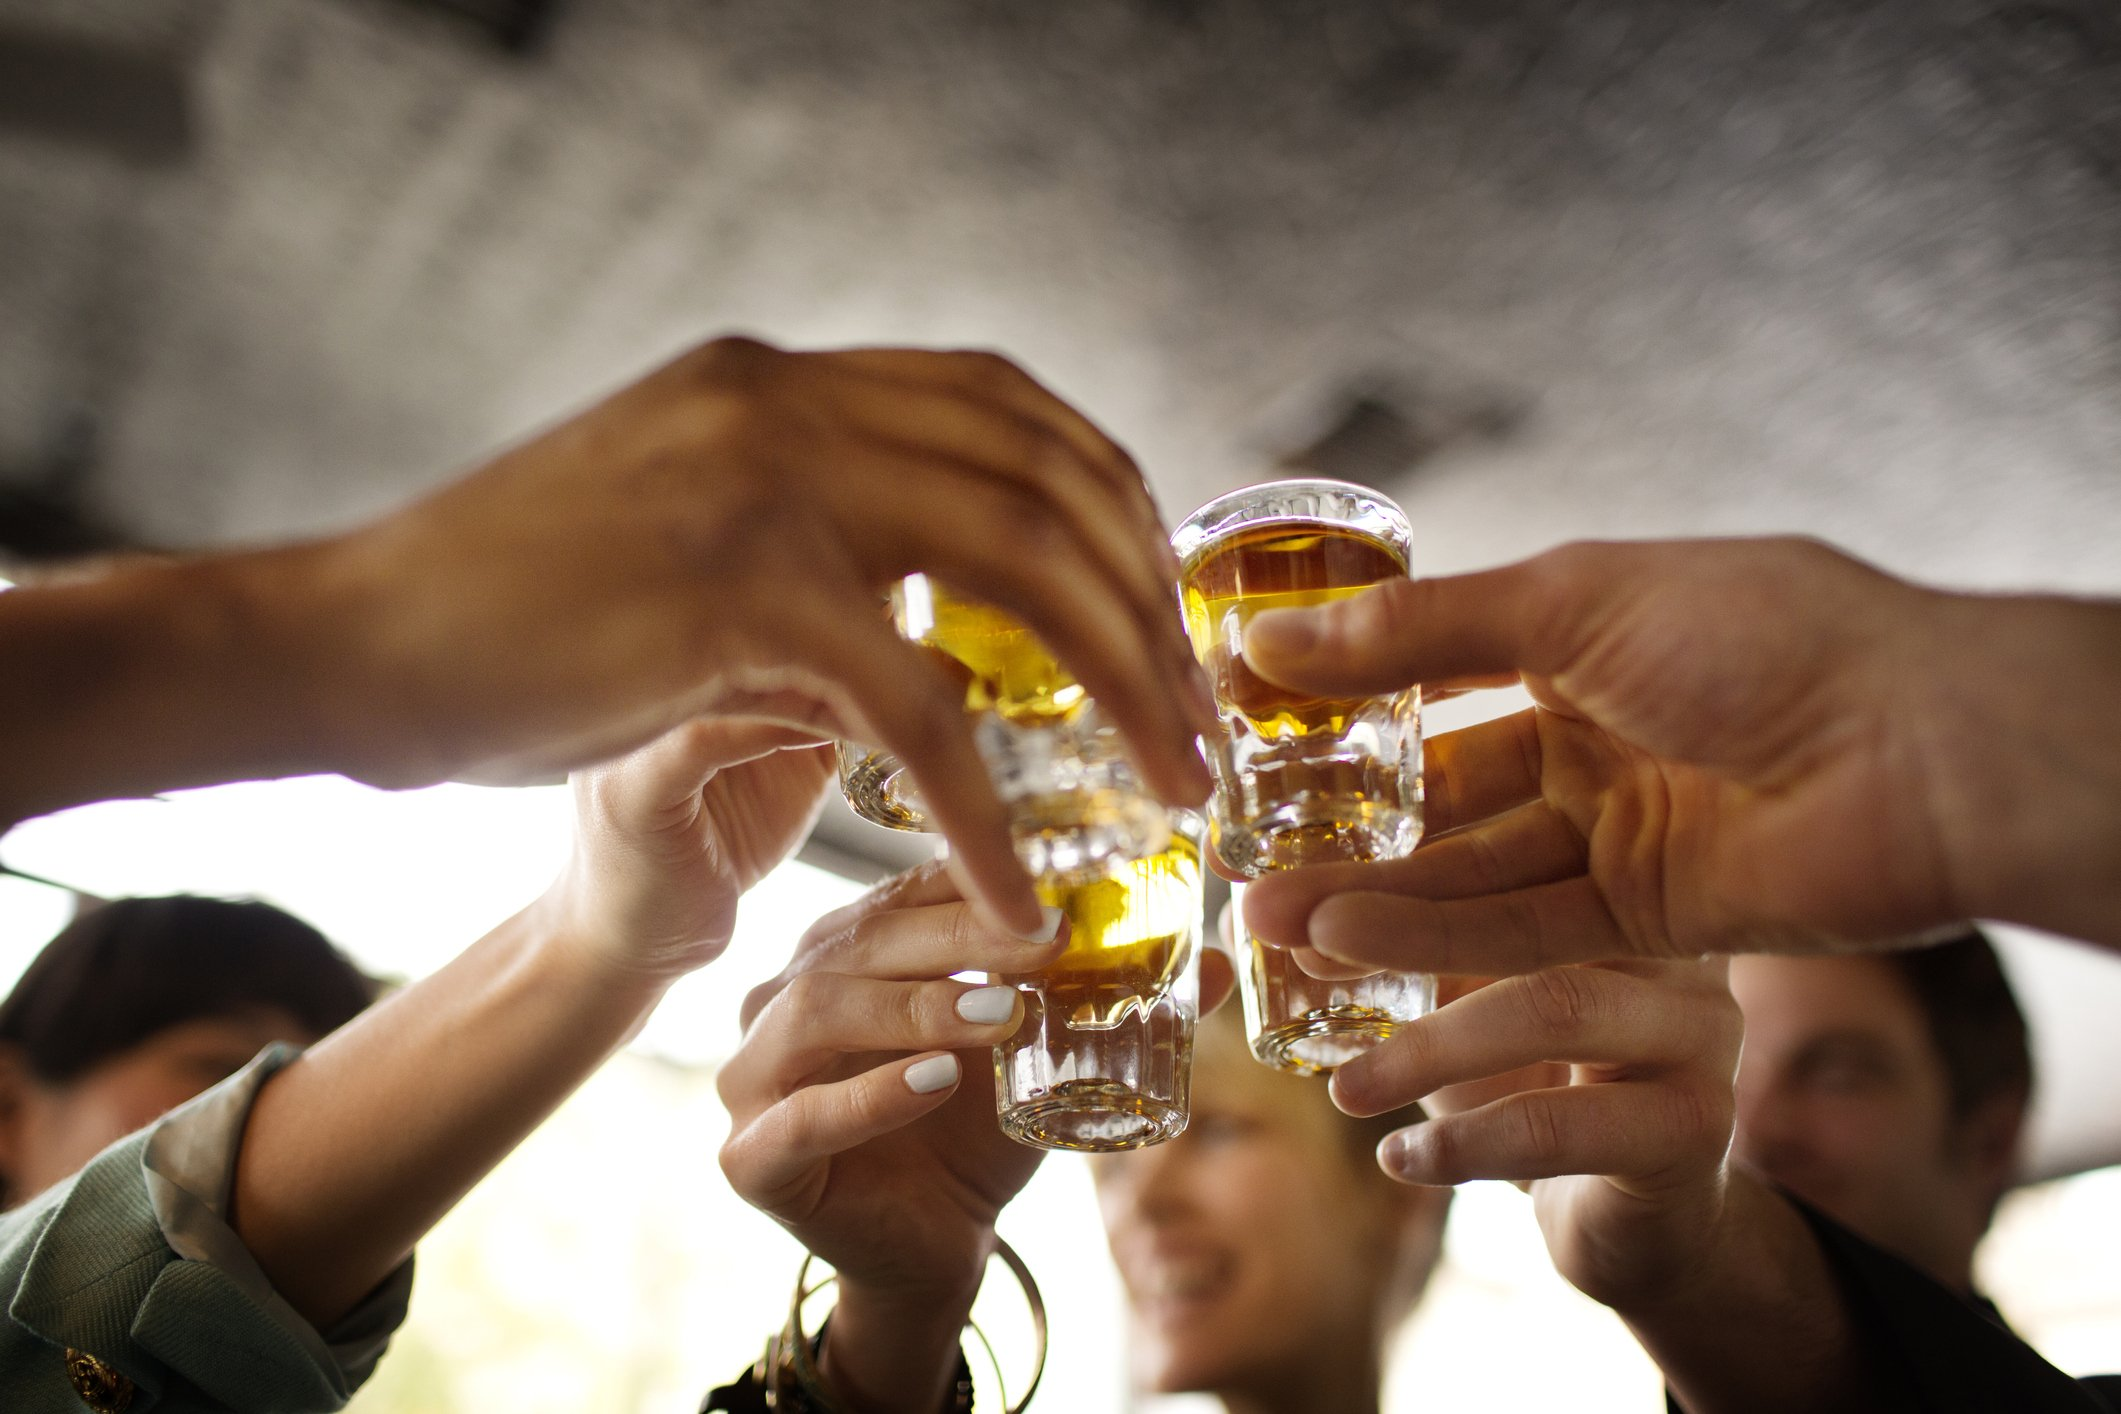 Friends toasting with shots of tequila in a bar.   Photo: Getty Images